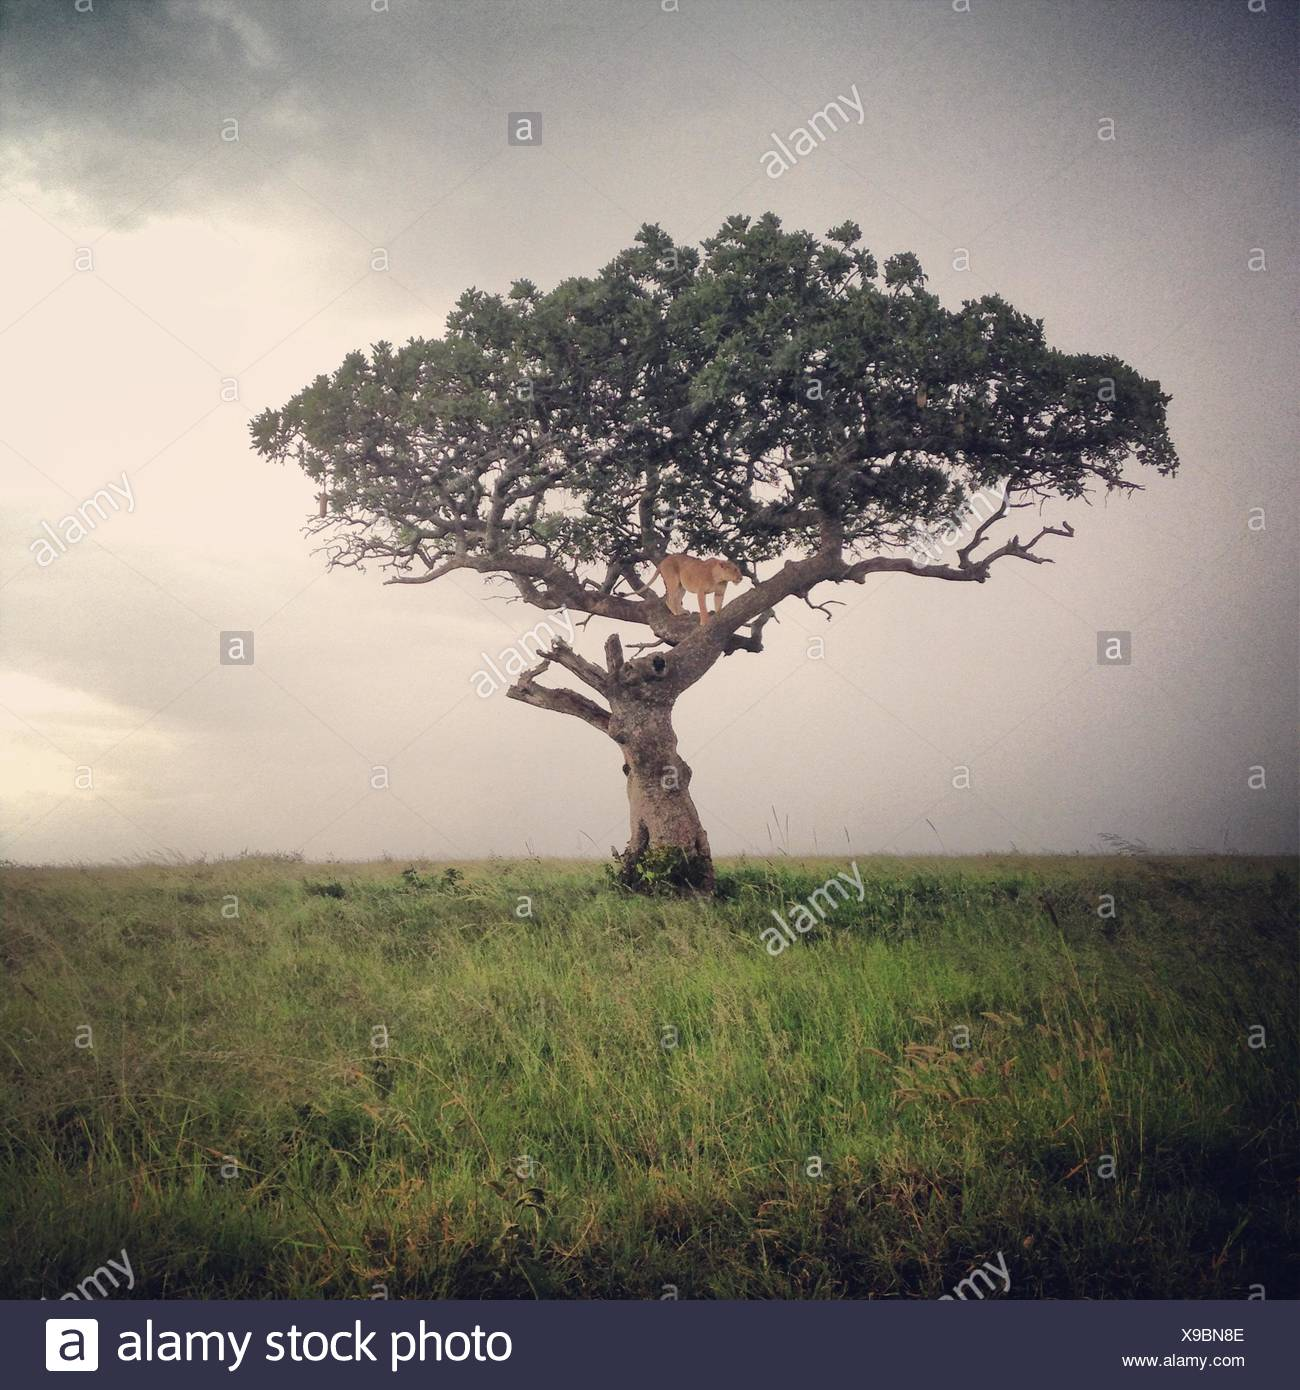 Lion Standing On A Tree - Stock Image